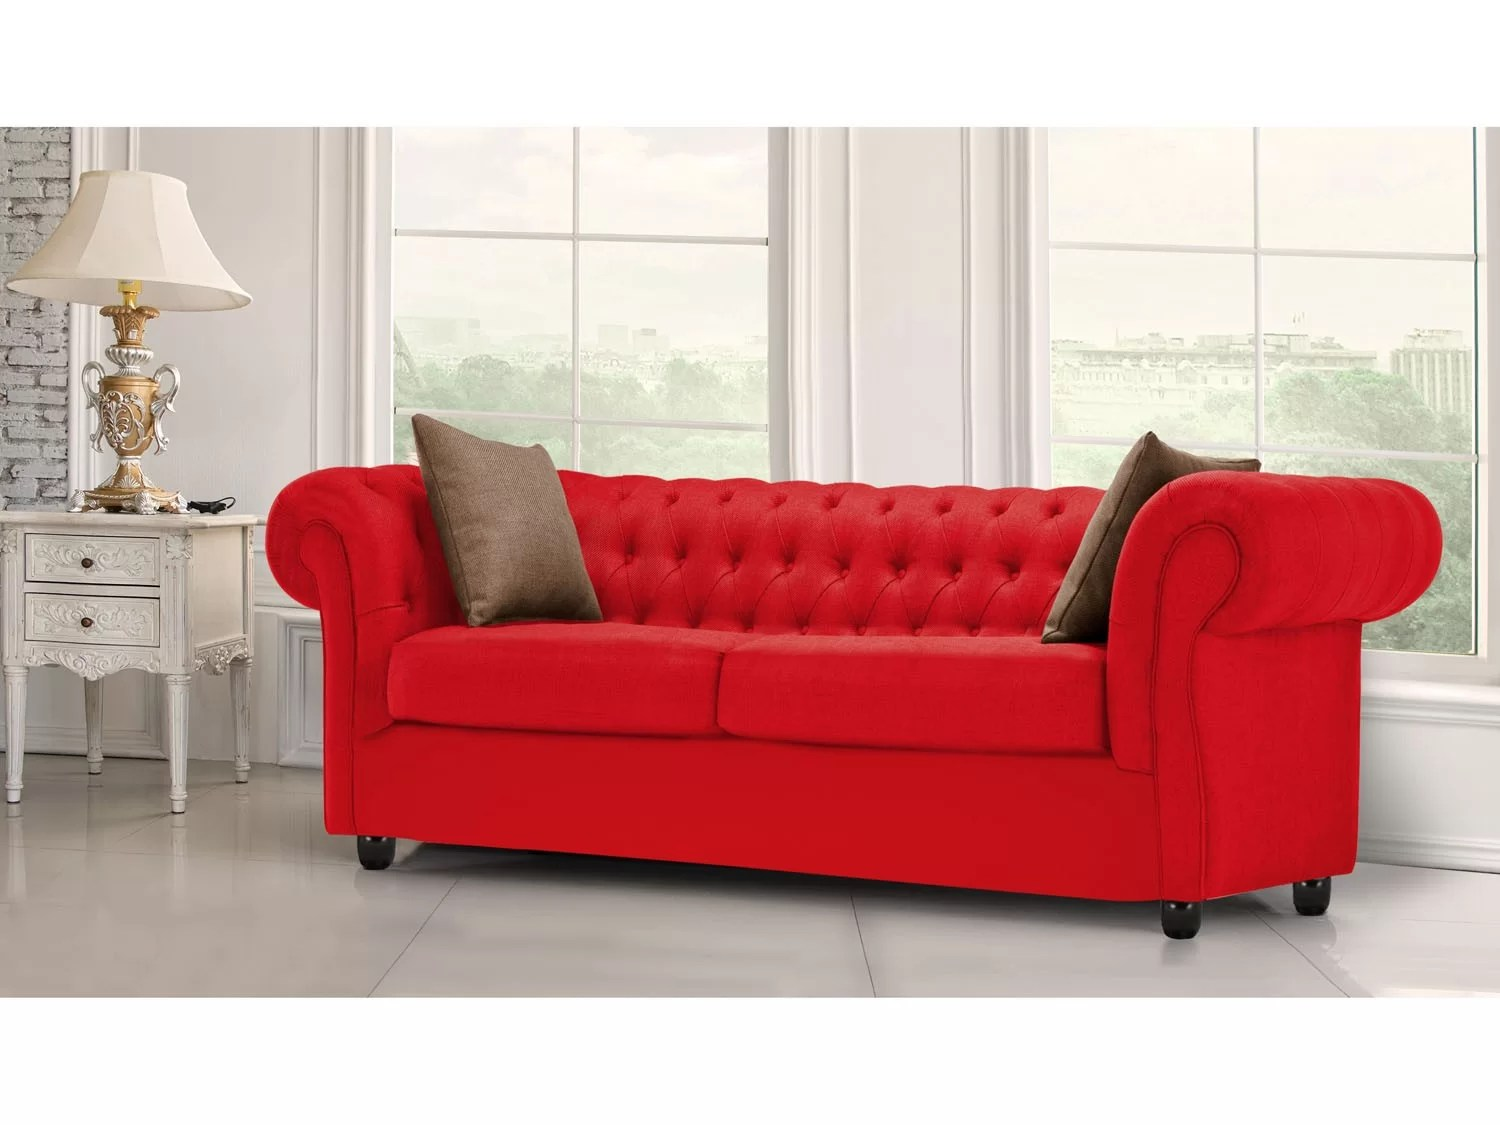 sofa legs with br castors wood sectional plans sofá 3 lugares suede master new chesterfield castor